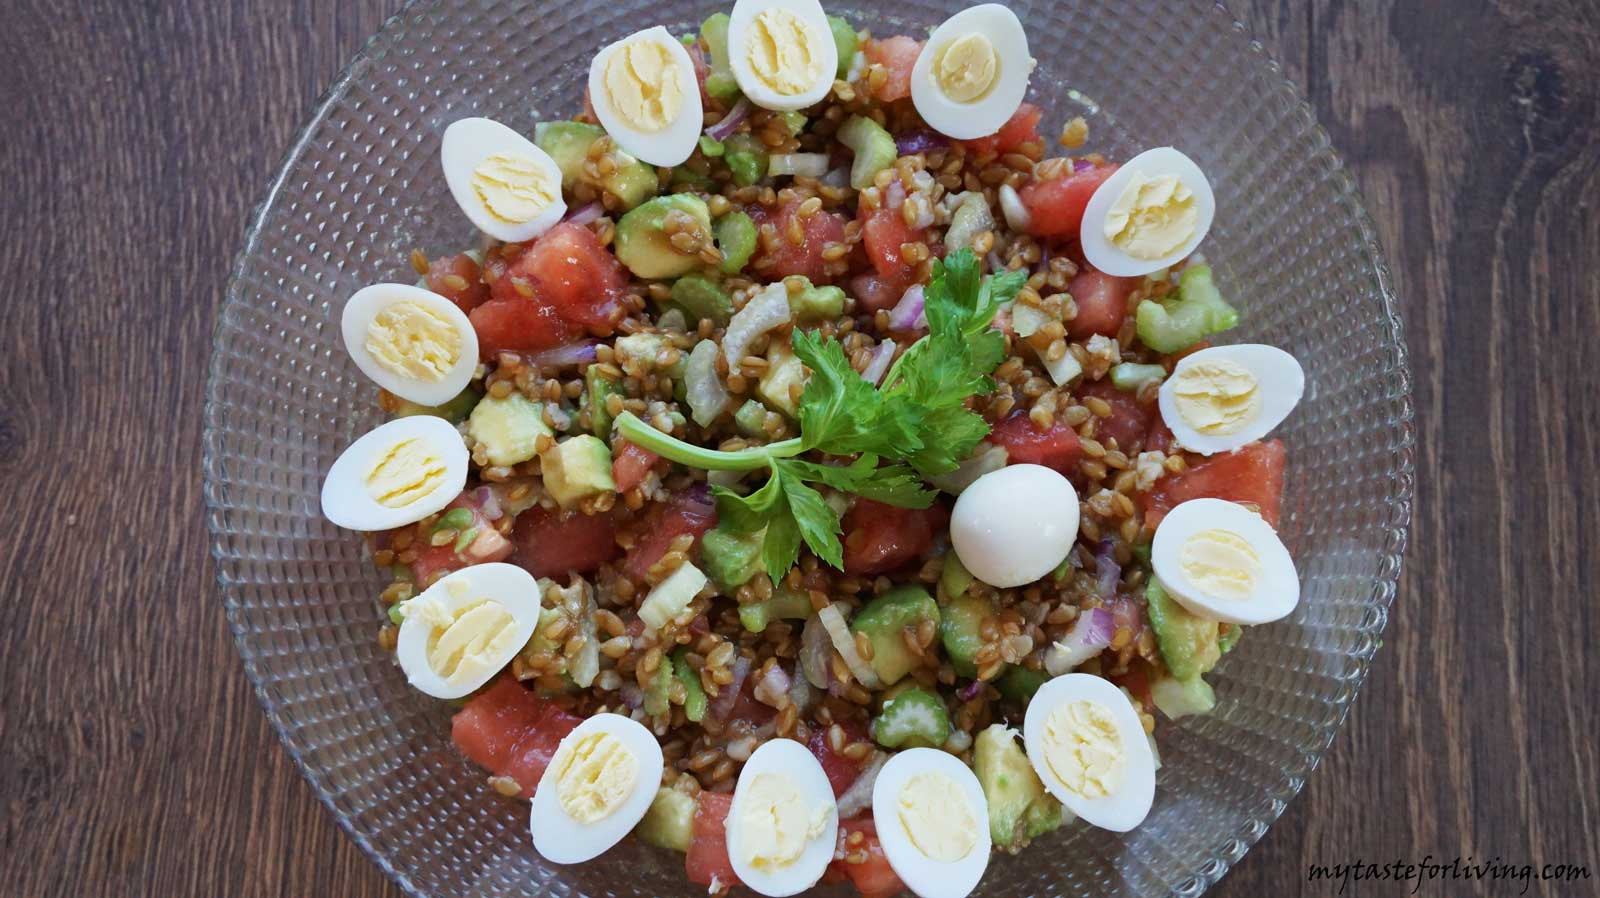 Delicious salad of einkorn with avocado, celery and tomatoes.